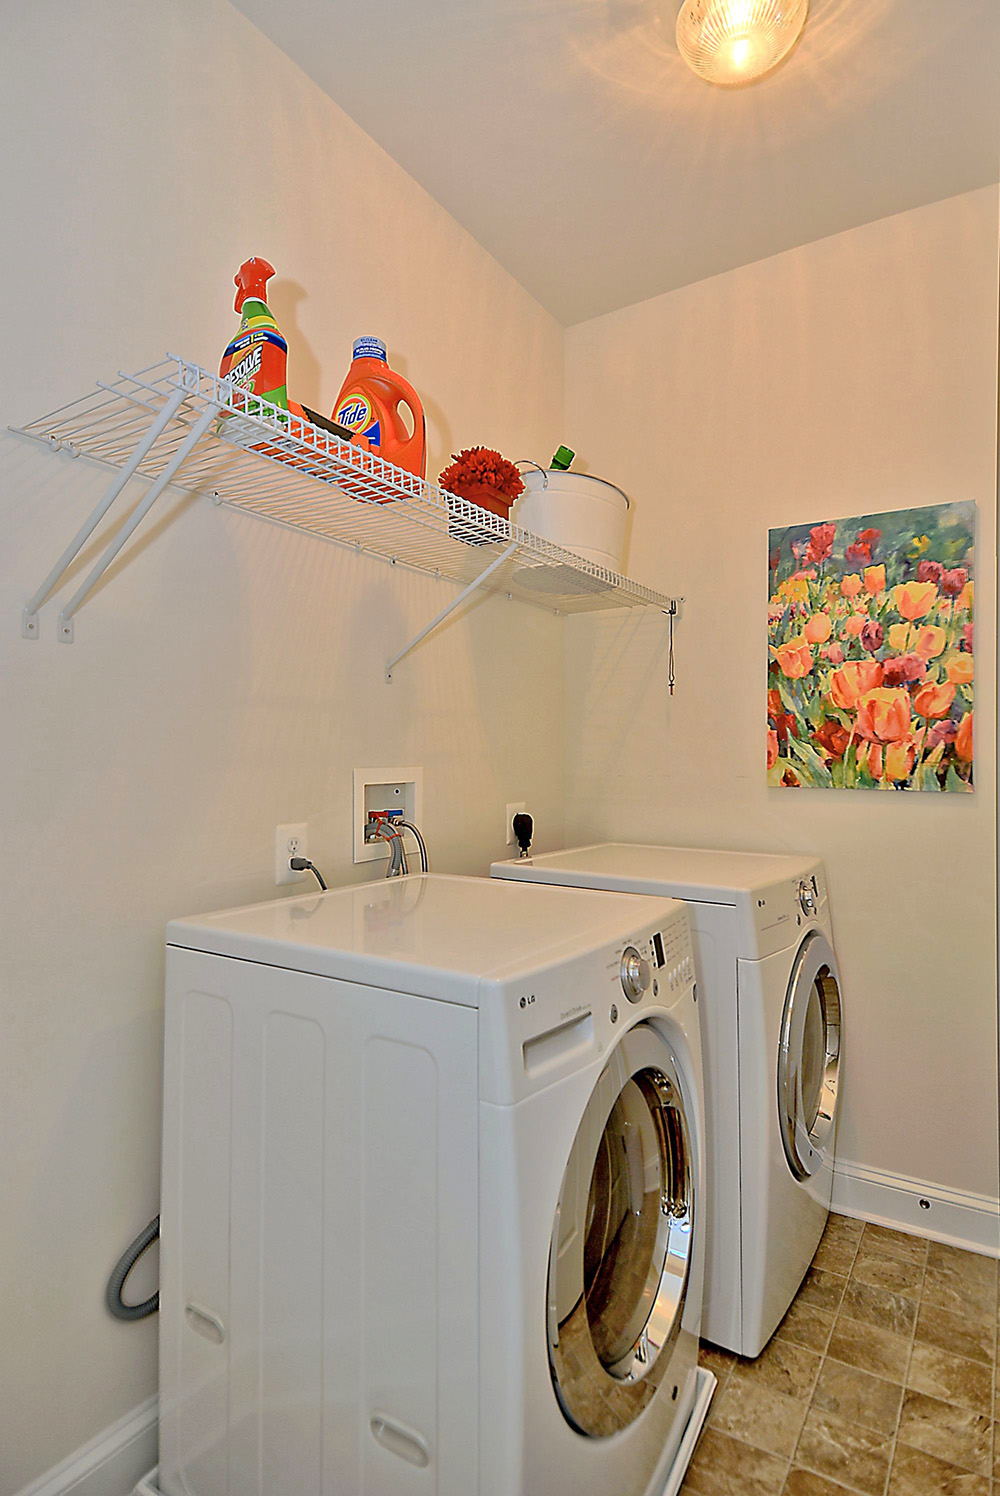 Print_Upper Level-Washer and dryer..jpg